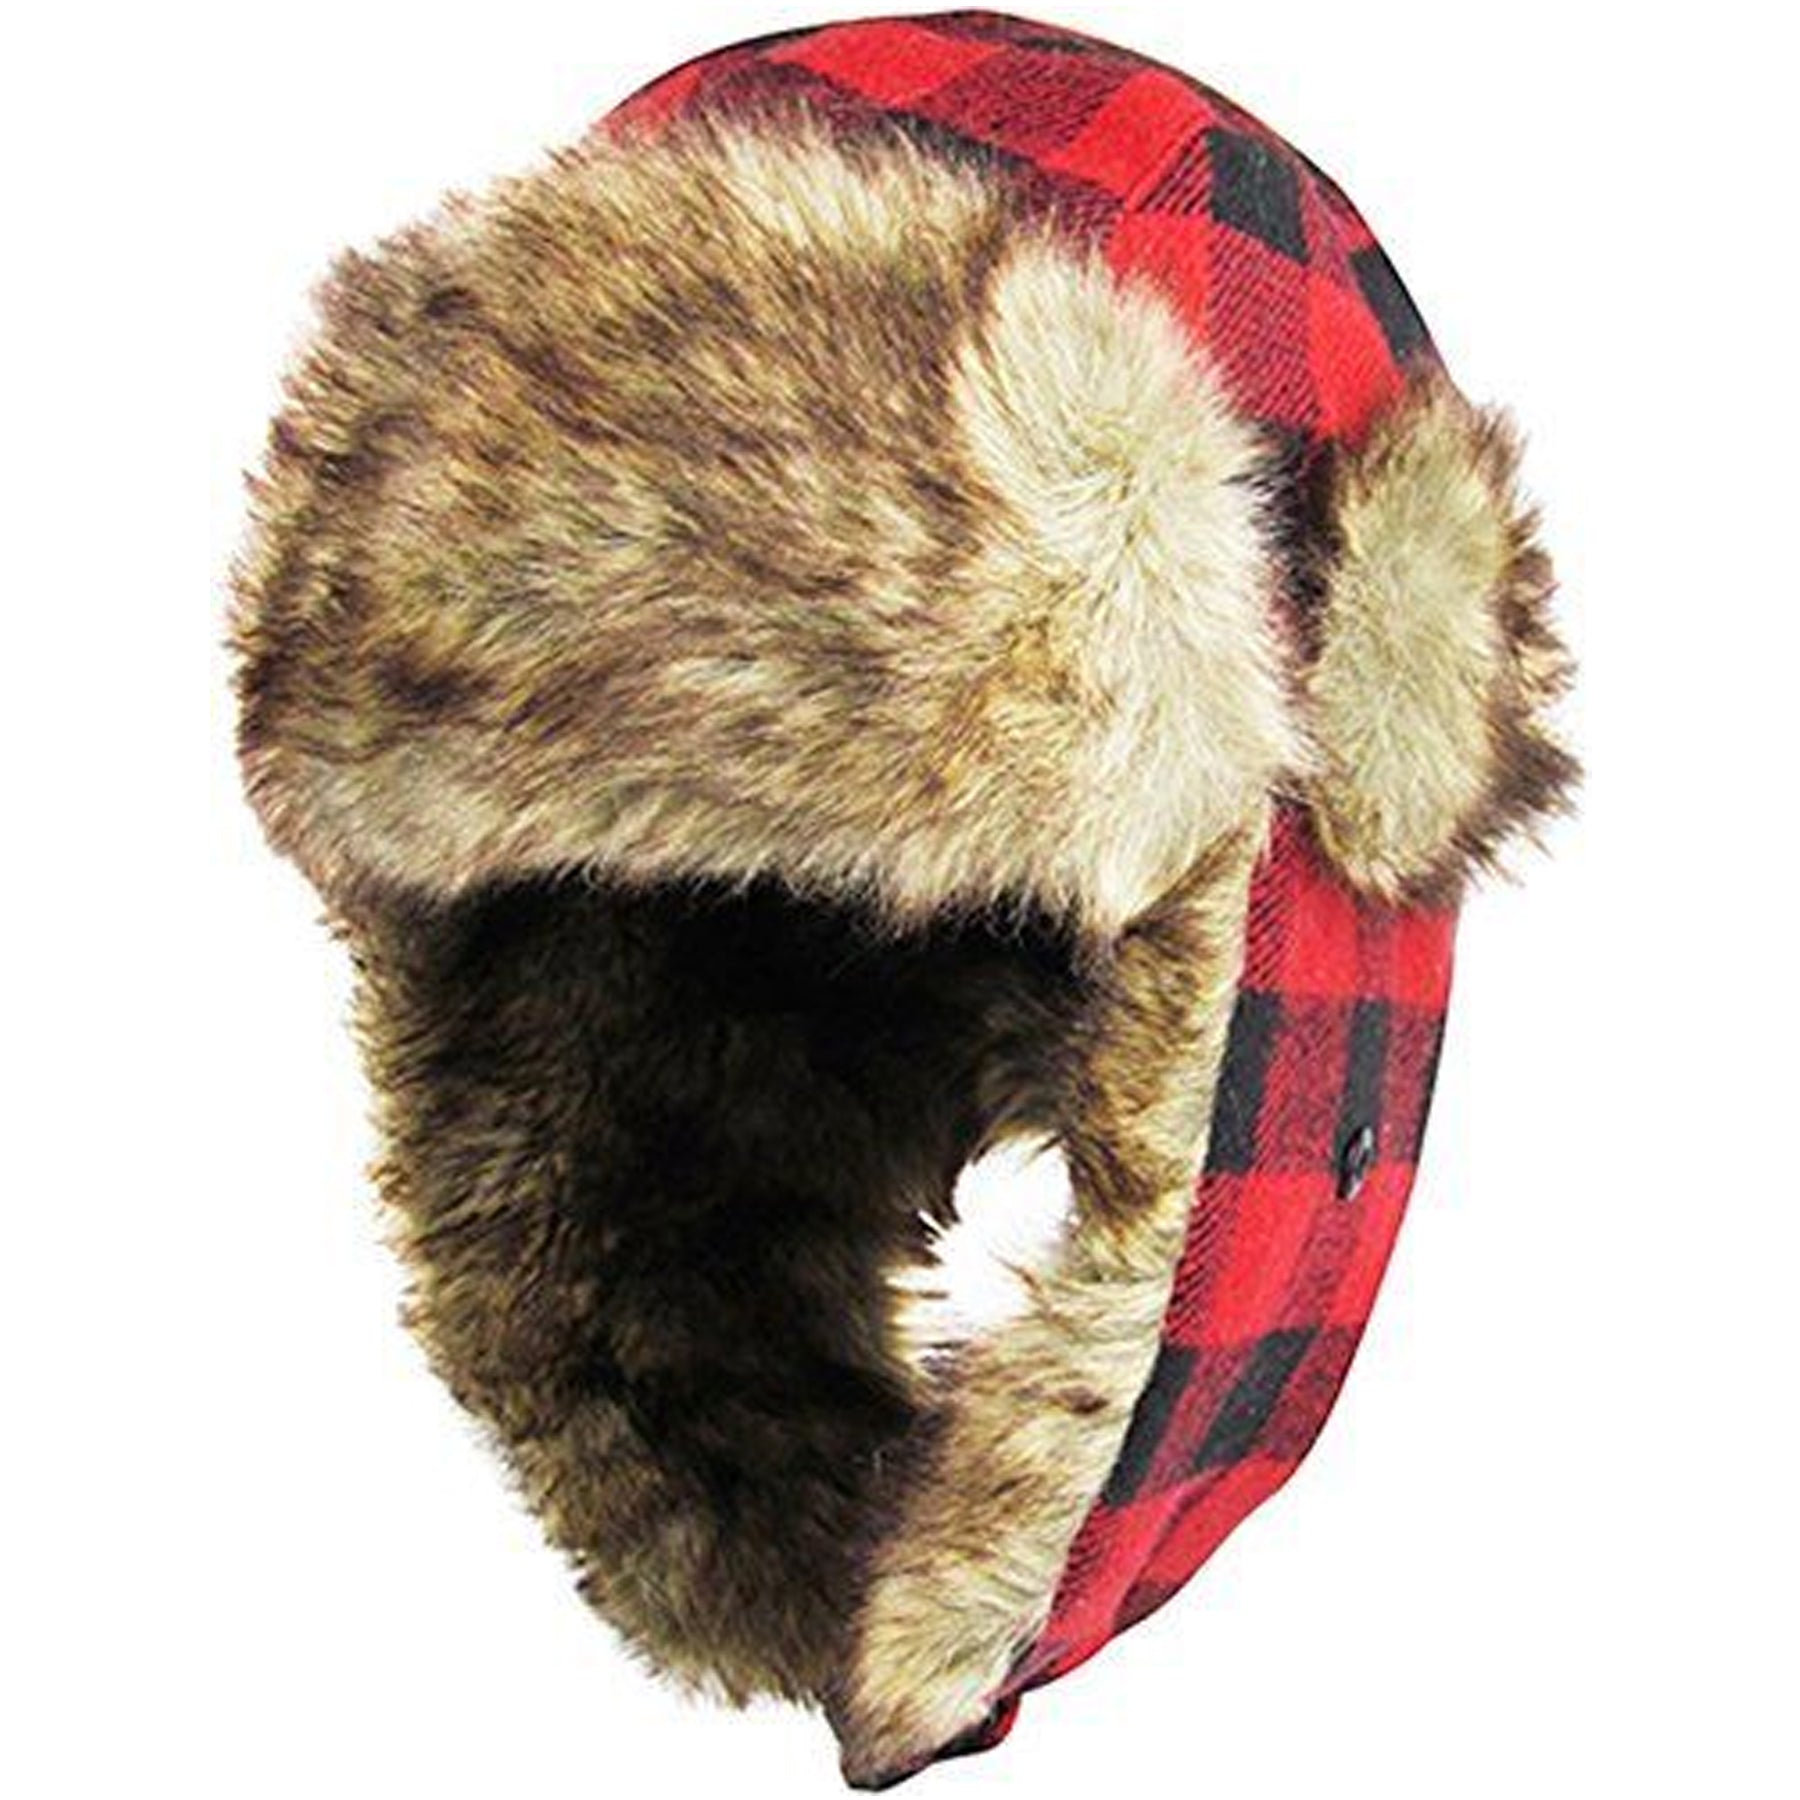 0692fc11bf6 the interior of the red and black plaid lumberjack trapper hat has 100%  polyester vegan